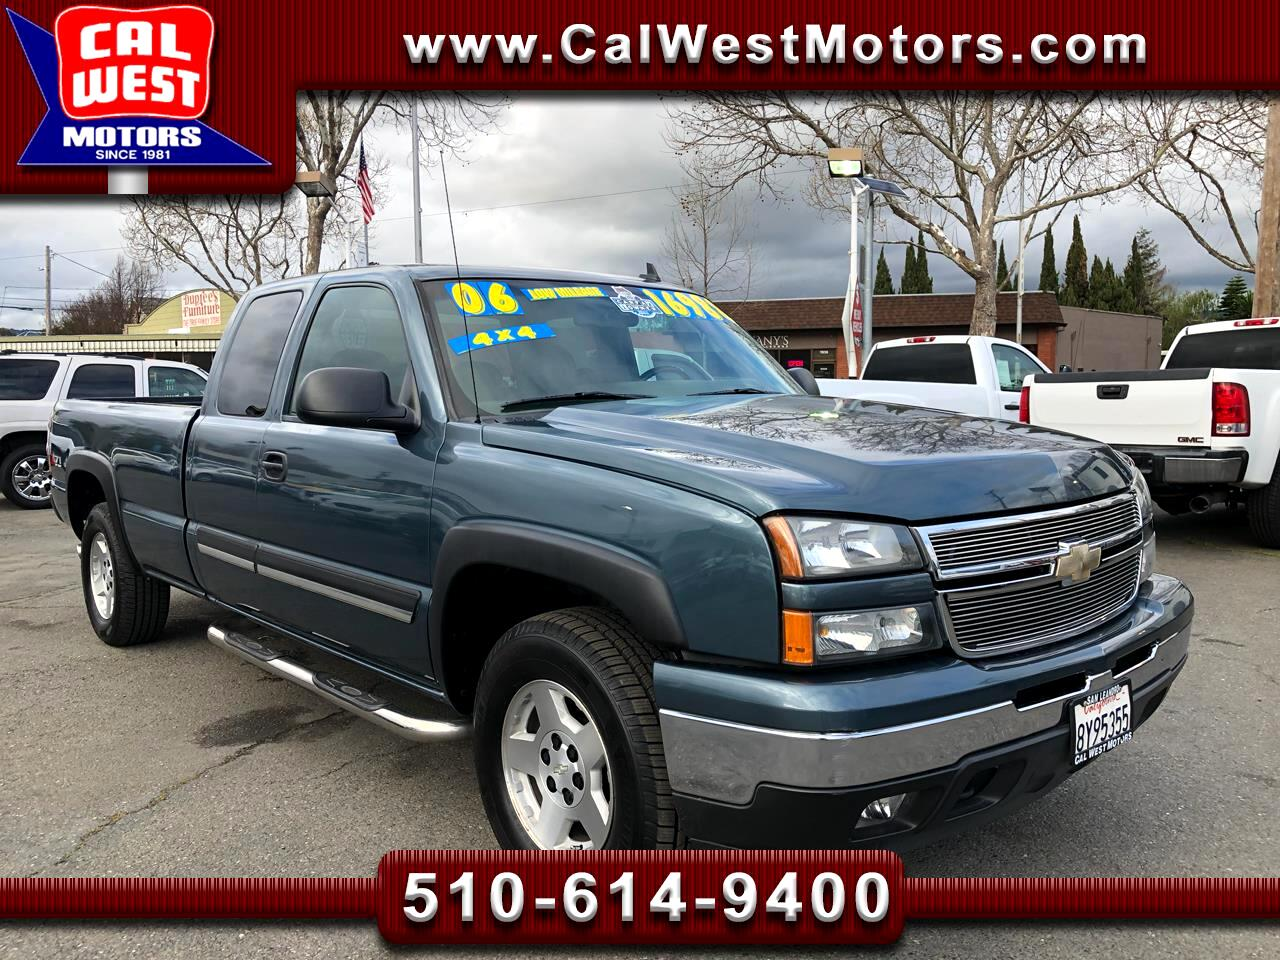 2006 Chevrolet Silverado 1500 4X4 Z71Pkg LT 8Ft 85K 1Owner SuperNice GreatMtnceH